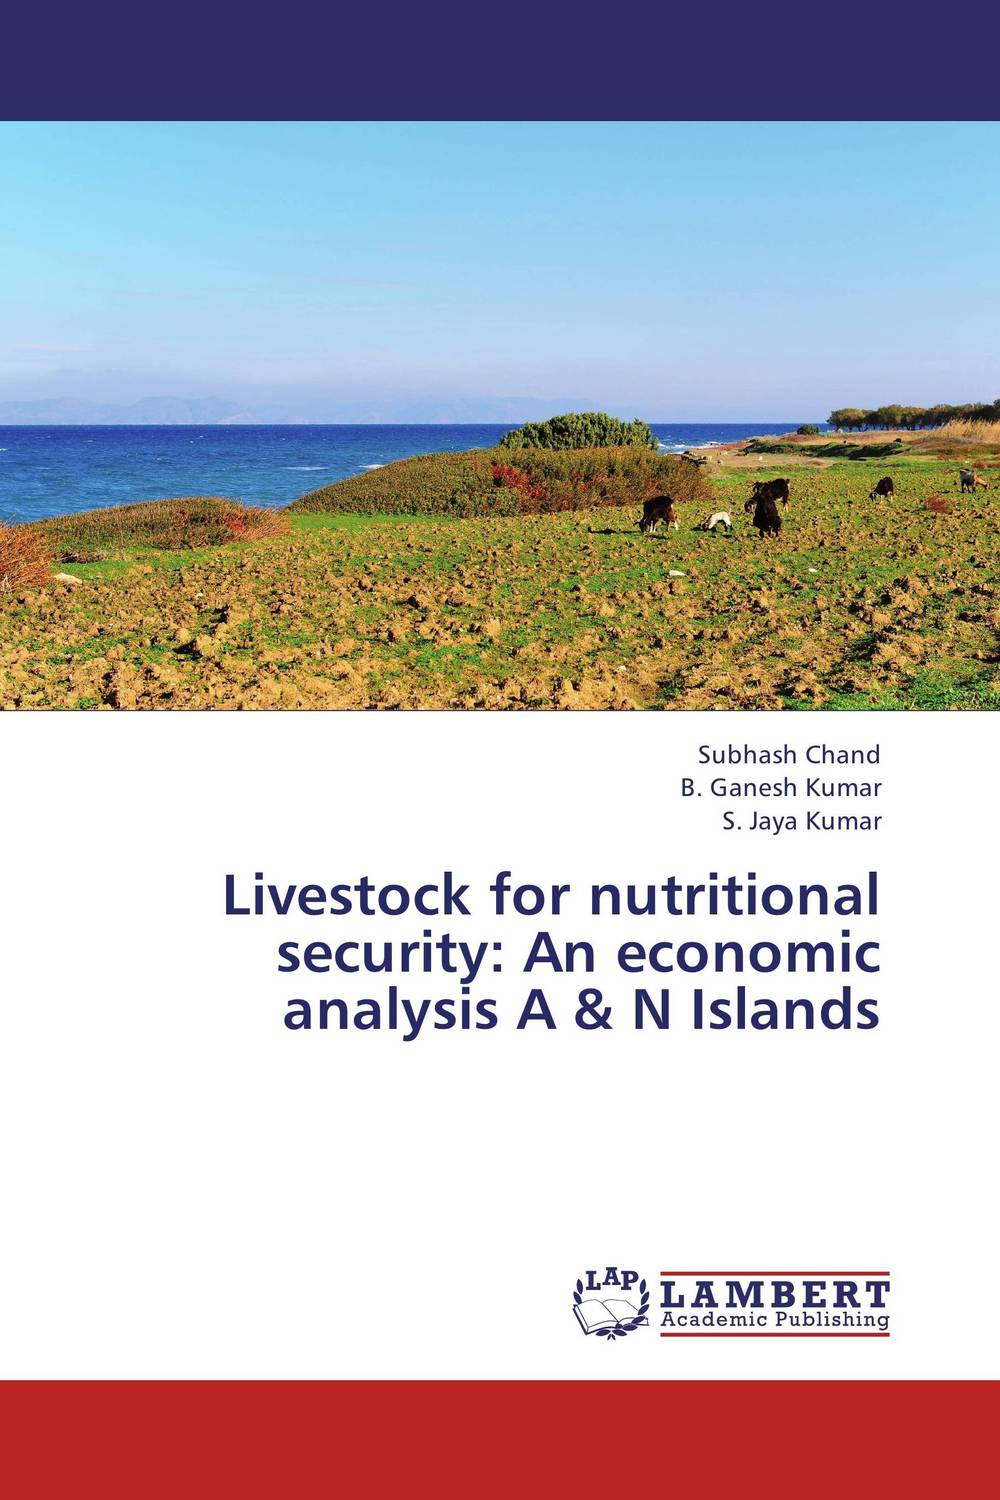 Livestock for nutritional security: An economic analysis A & N Islands an economic analysis of the environmental impacts of livestock grazing